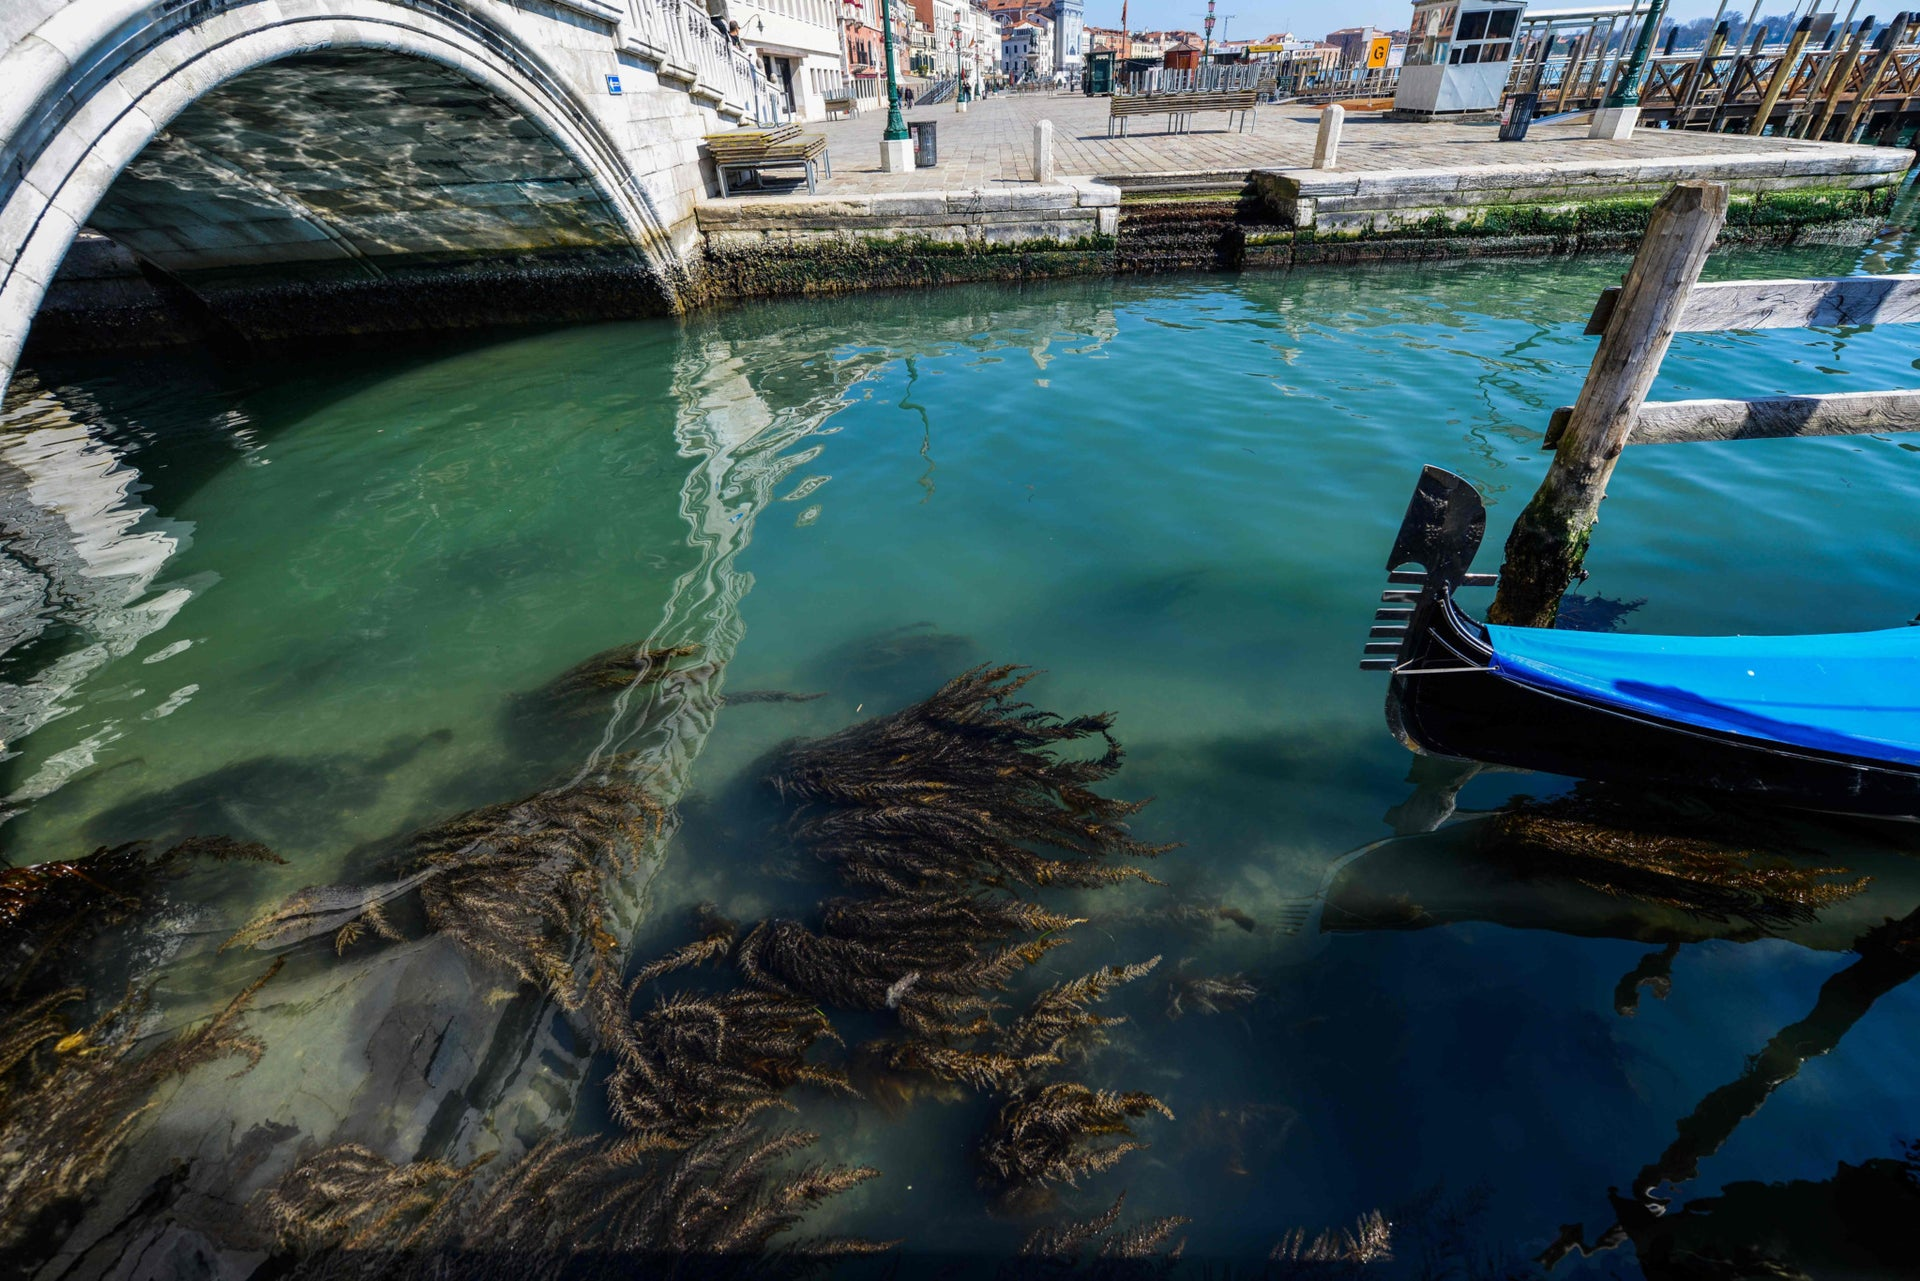 Seaweed in clear waters in Venice, Italy, March 18, 2020.